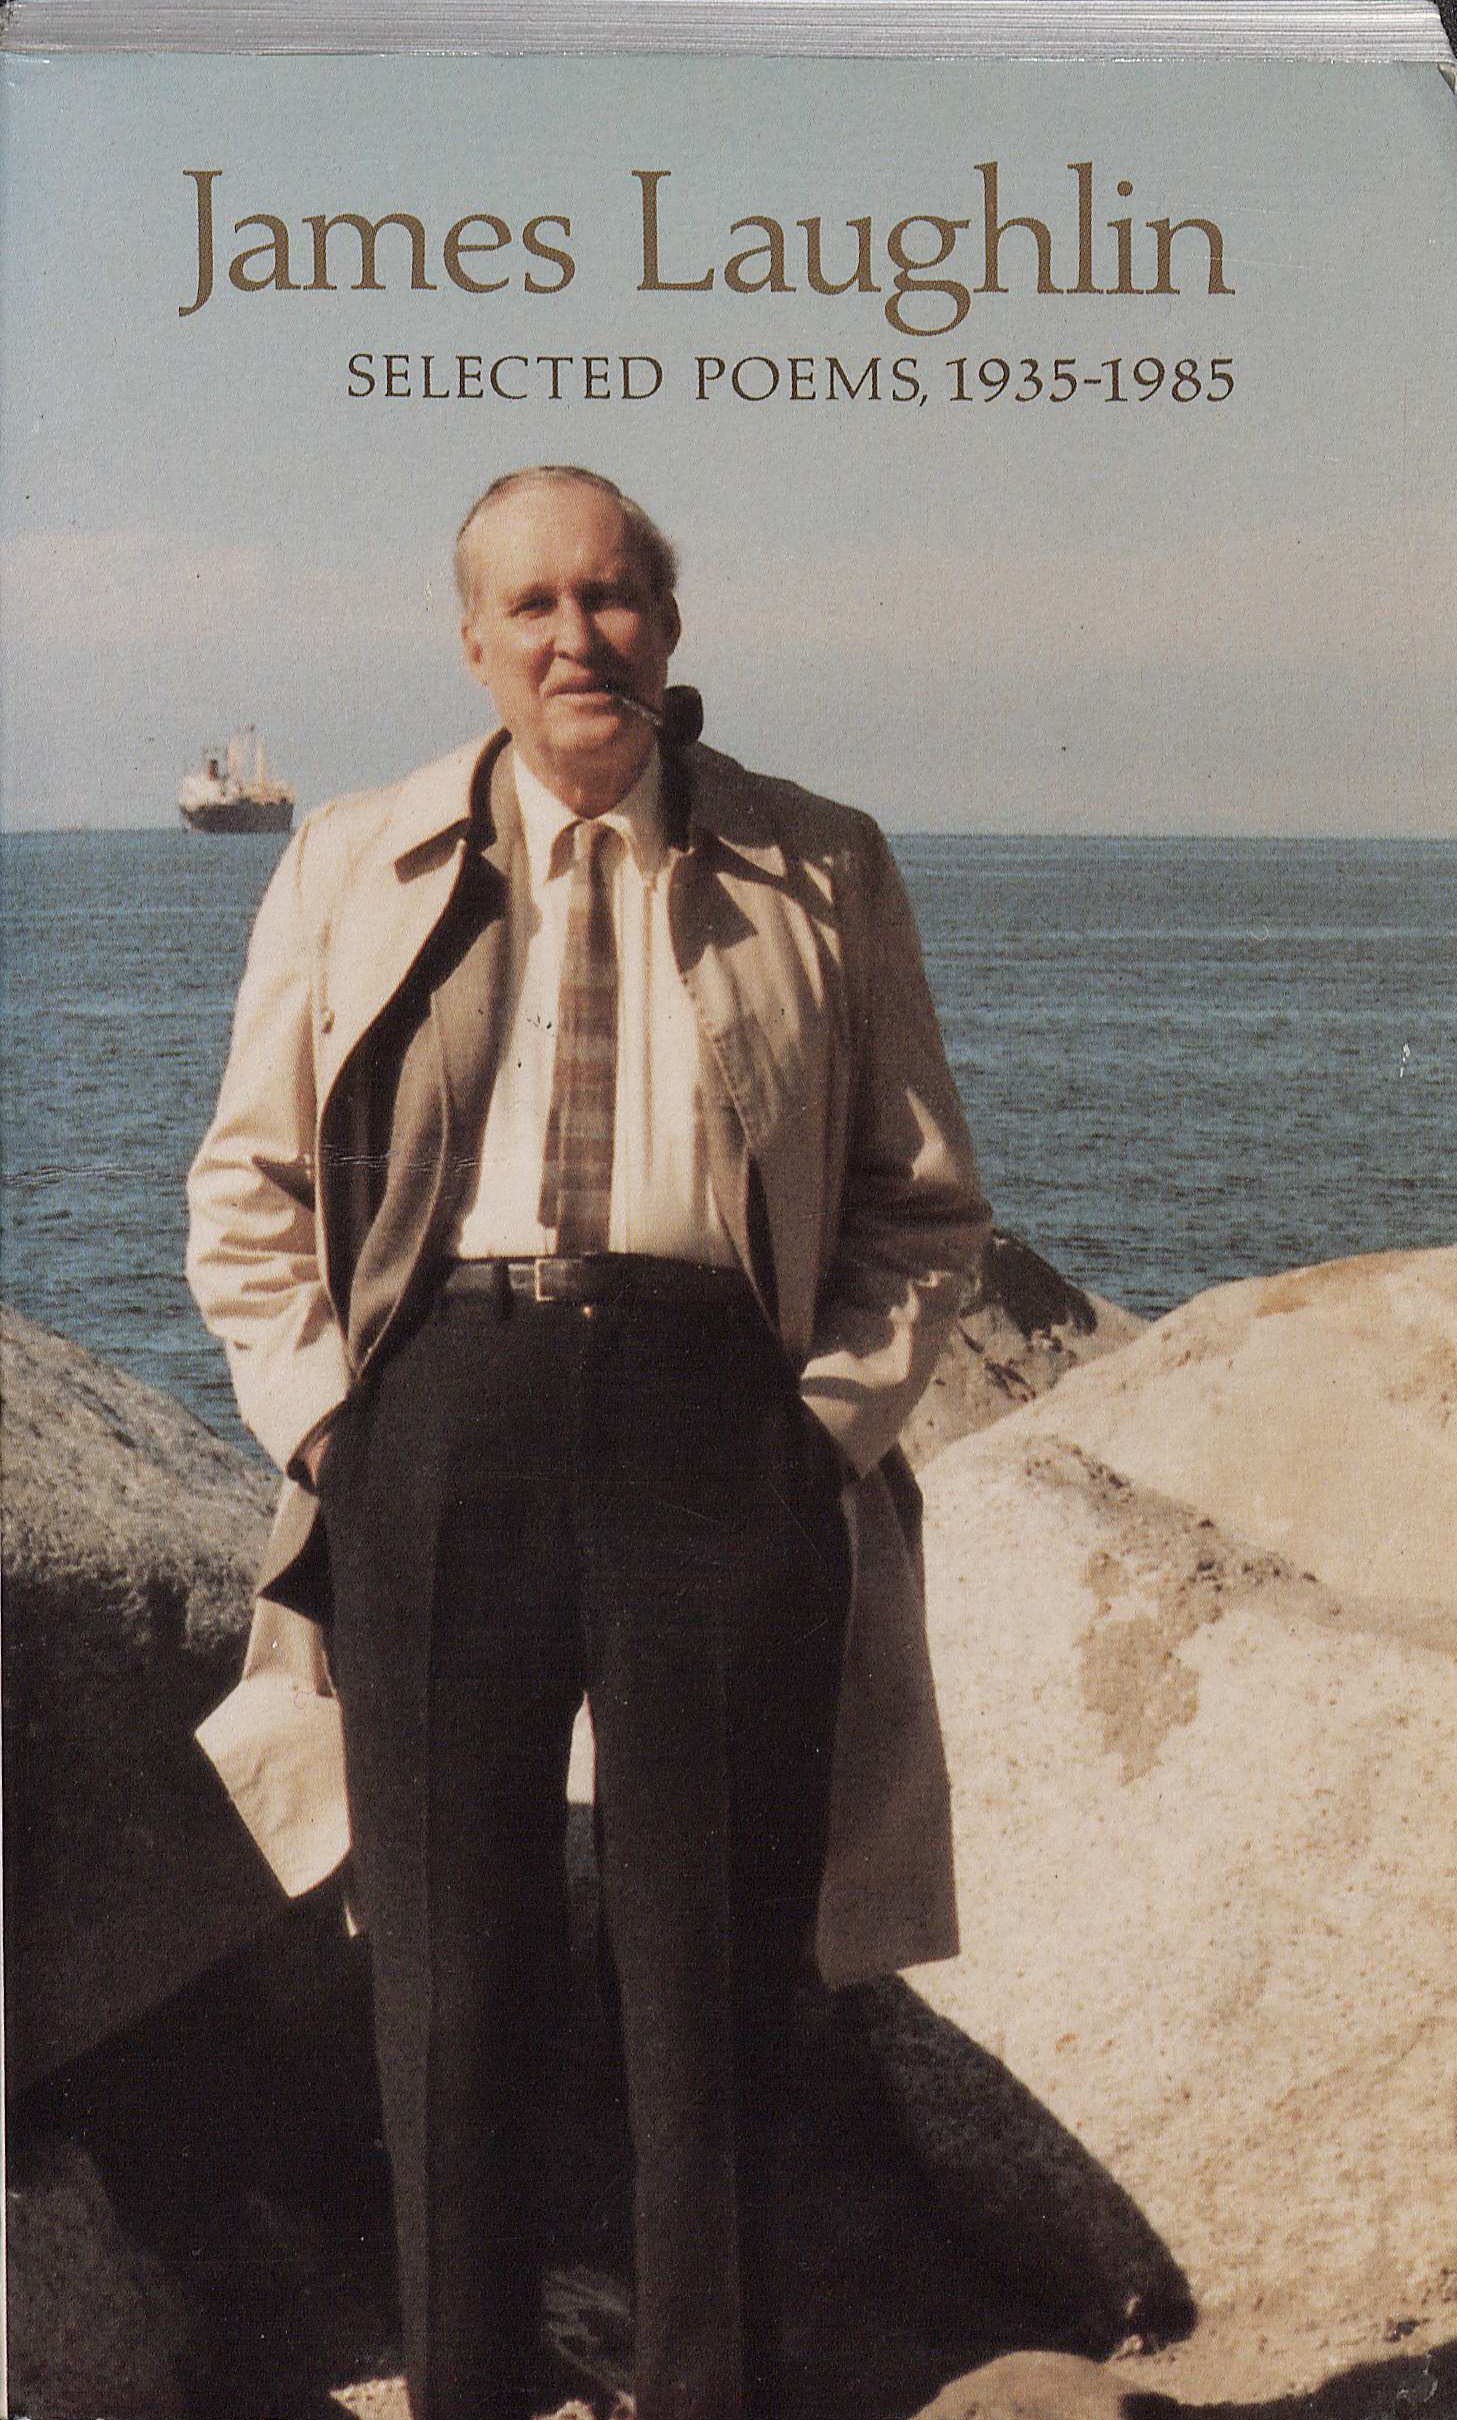 James Laughlin Selected Poems, 1935–1985.' City Light Books, 1986. (PS3523. A8245A6 1986. Marvin Tatum Collection of Contemporary Literature. Image by Caroline Newcomb)